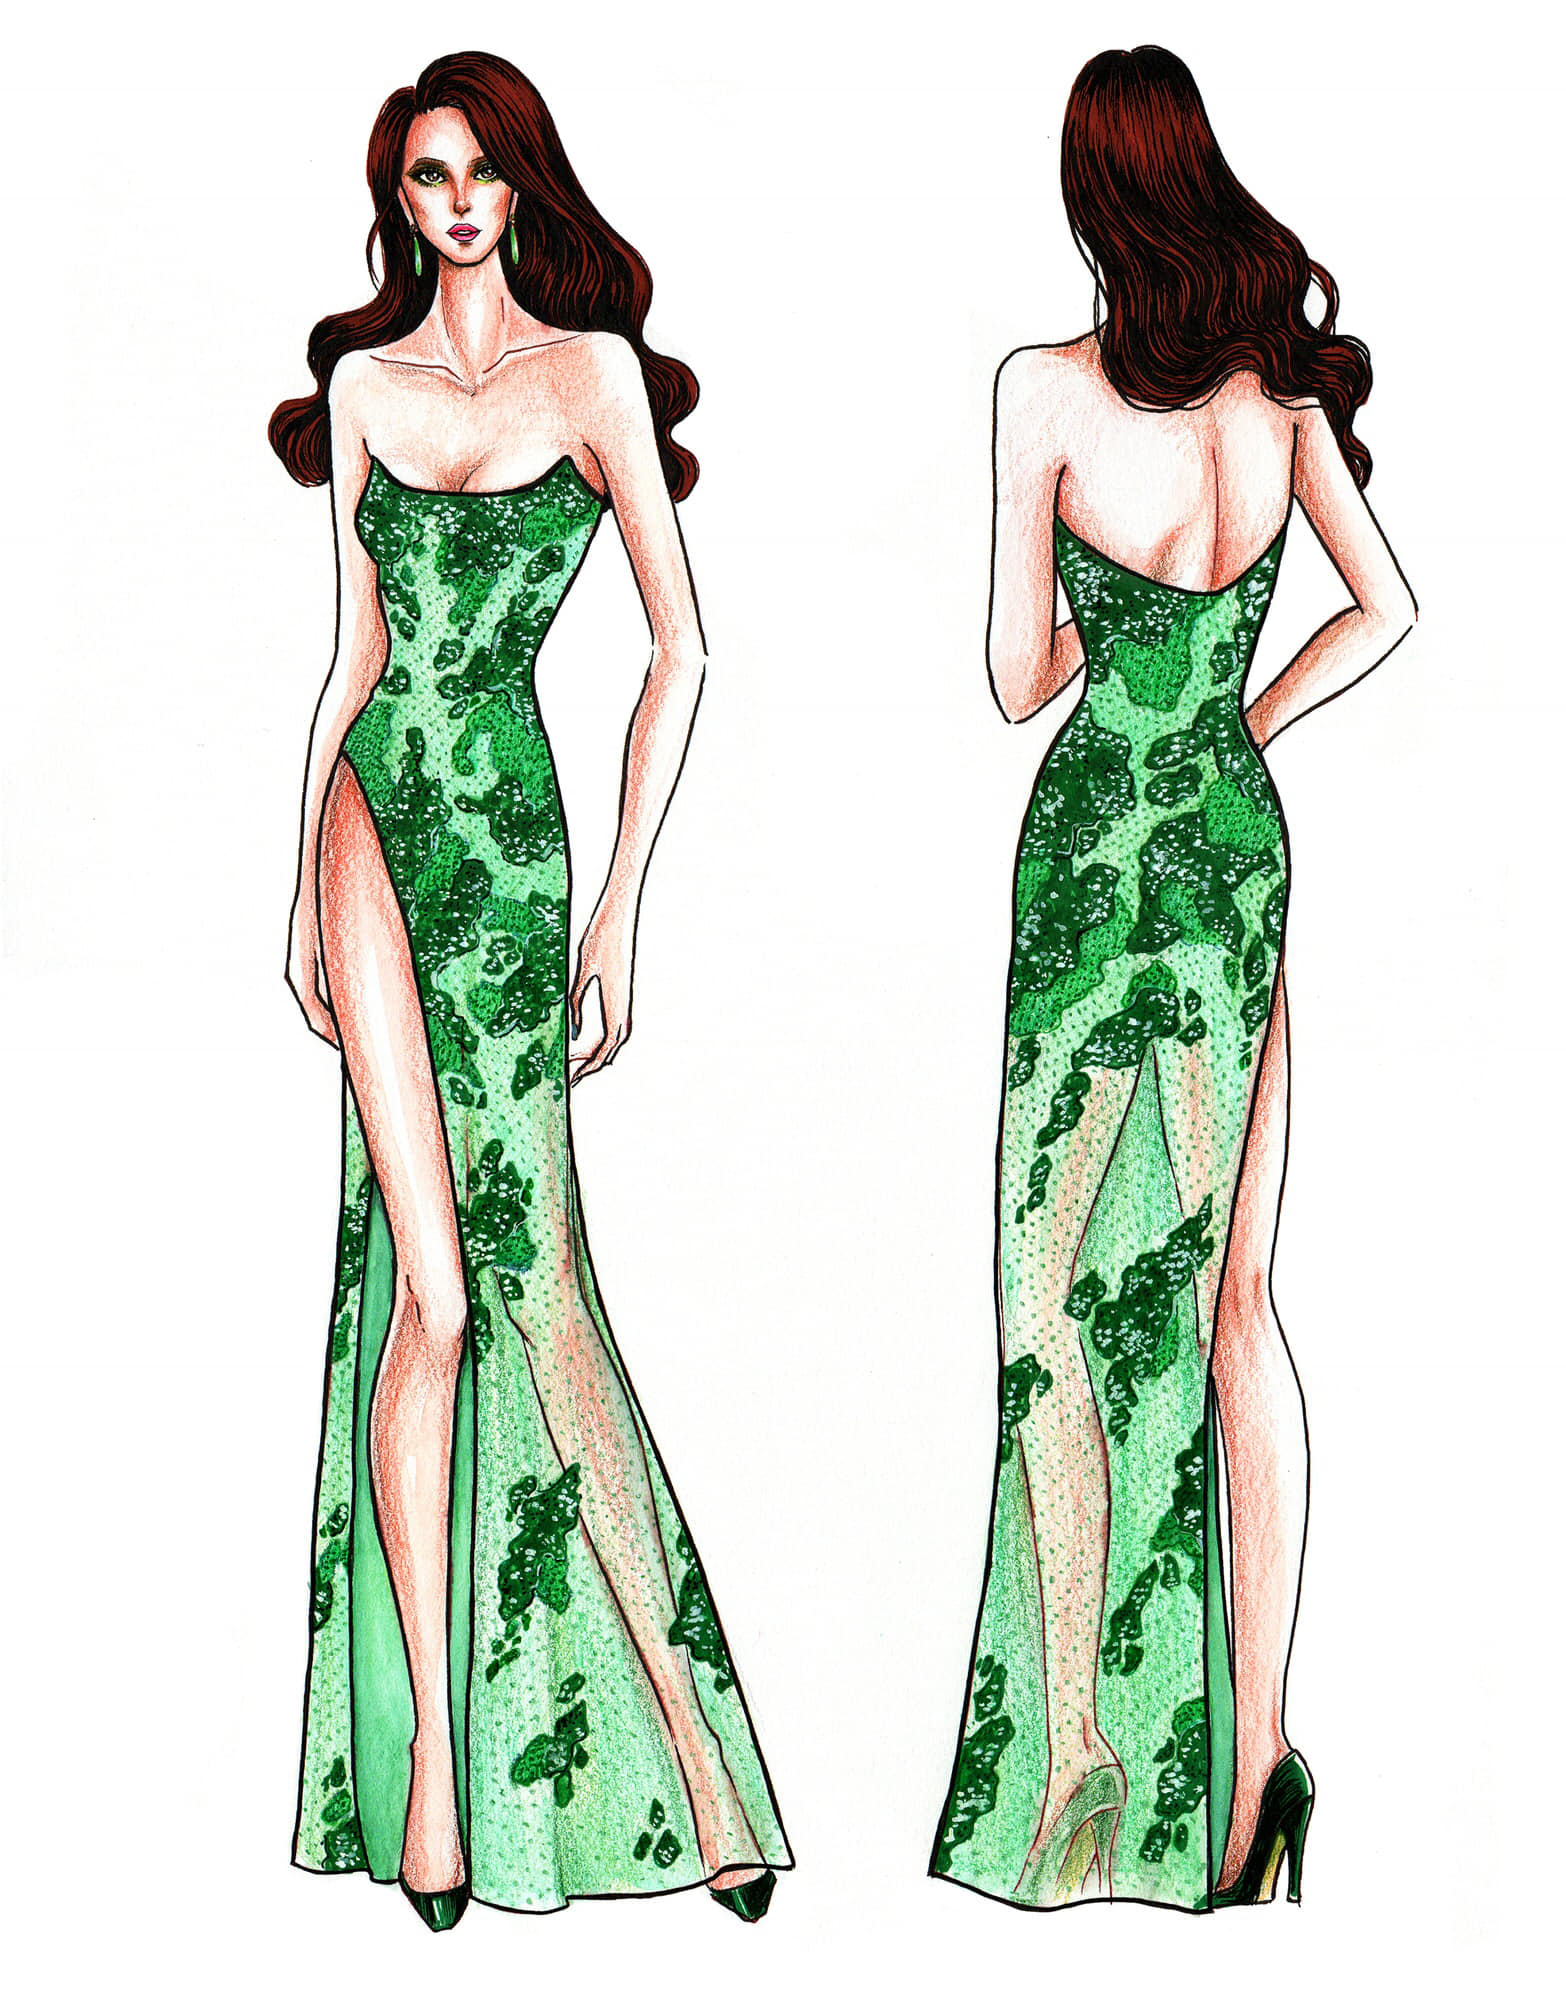 THE ISLANDS. A green gown that has the pattern of the country's islands. Photo from Facebook/Mak Tumang